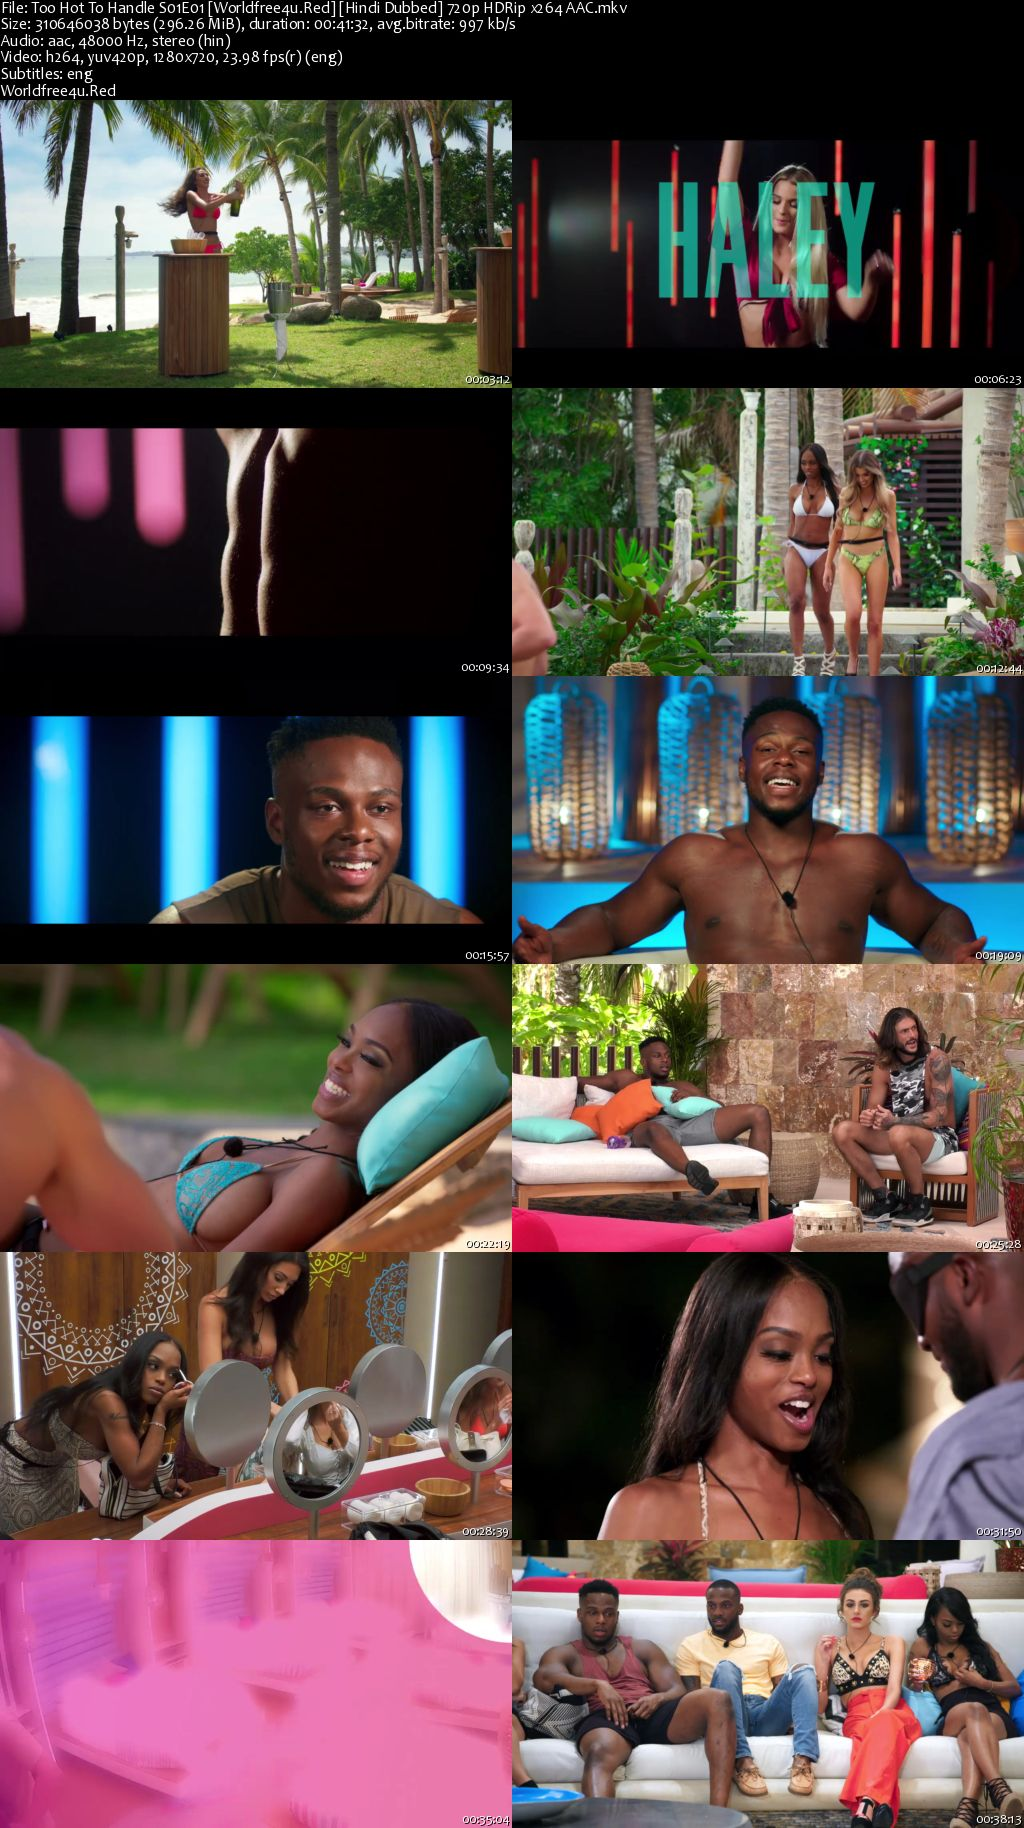 Too Hot To Handle 2020 (Season 1) All Episodes HDRip 720p